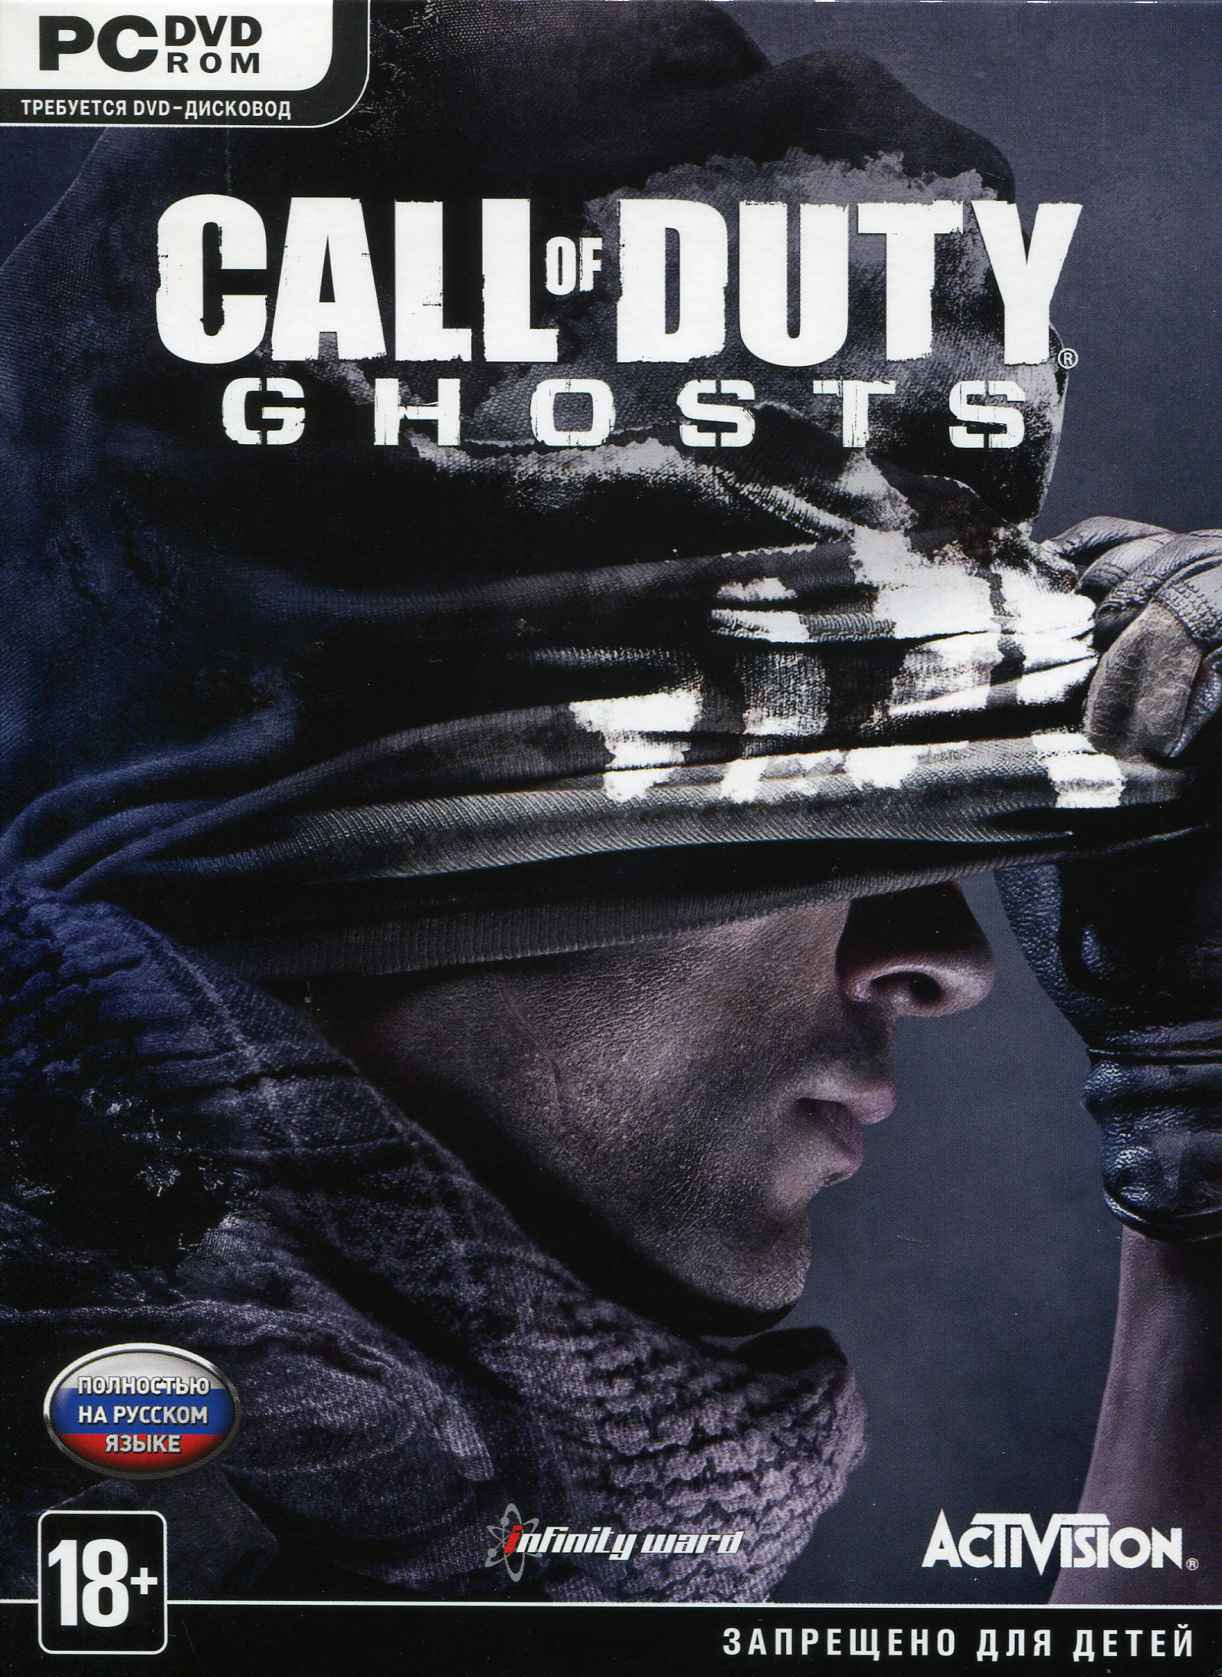 Call Of Duty: Ghosts (Activation Key Steam)